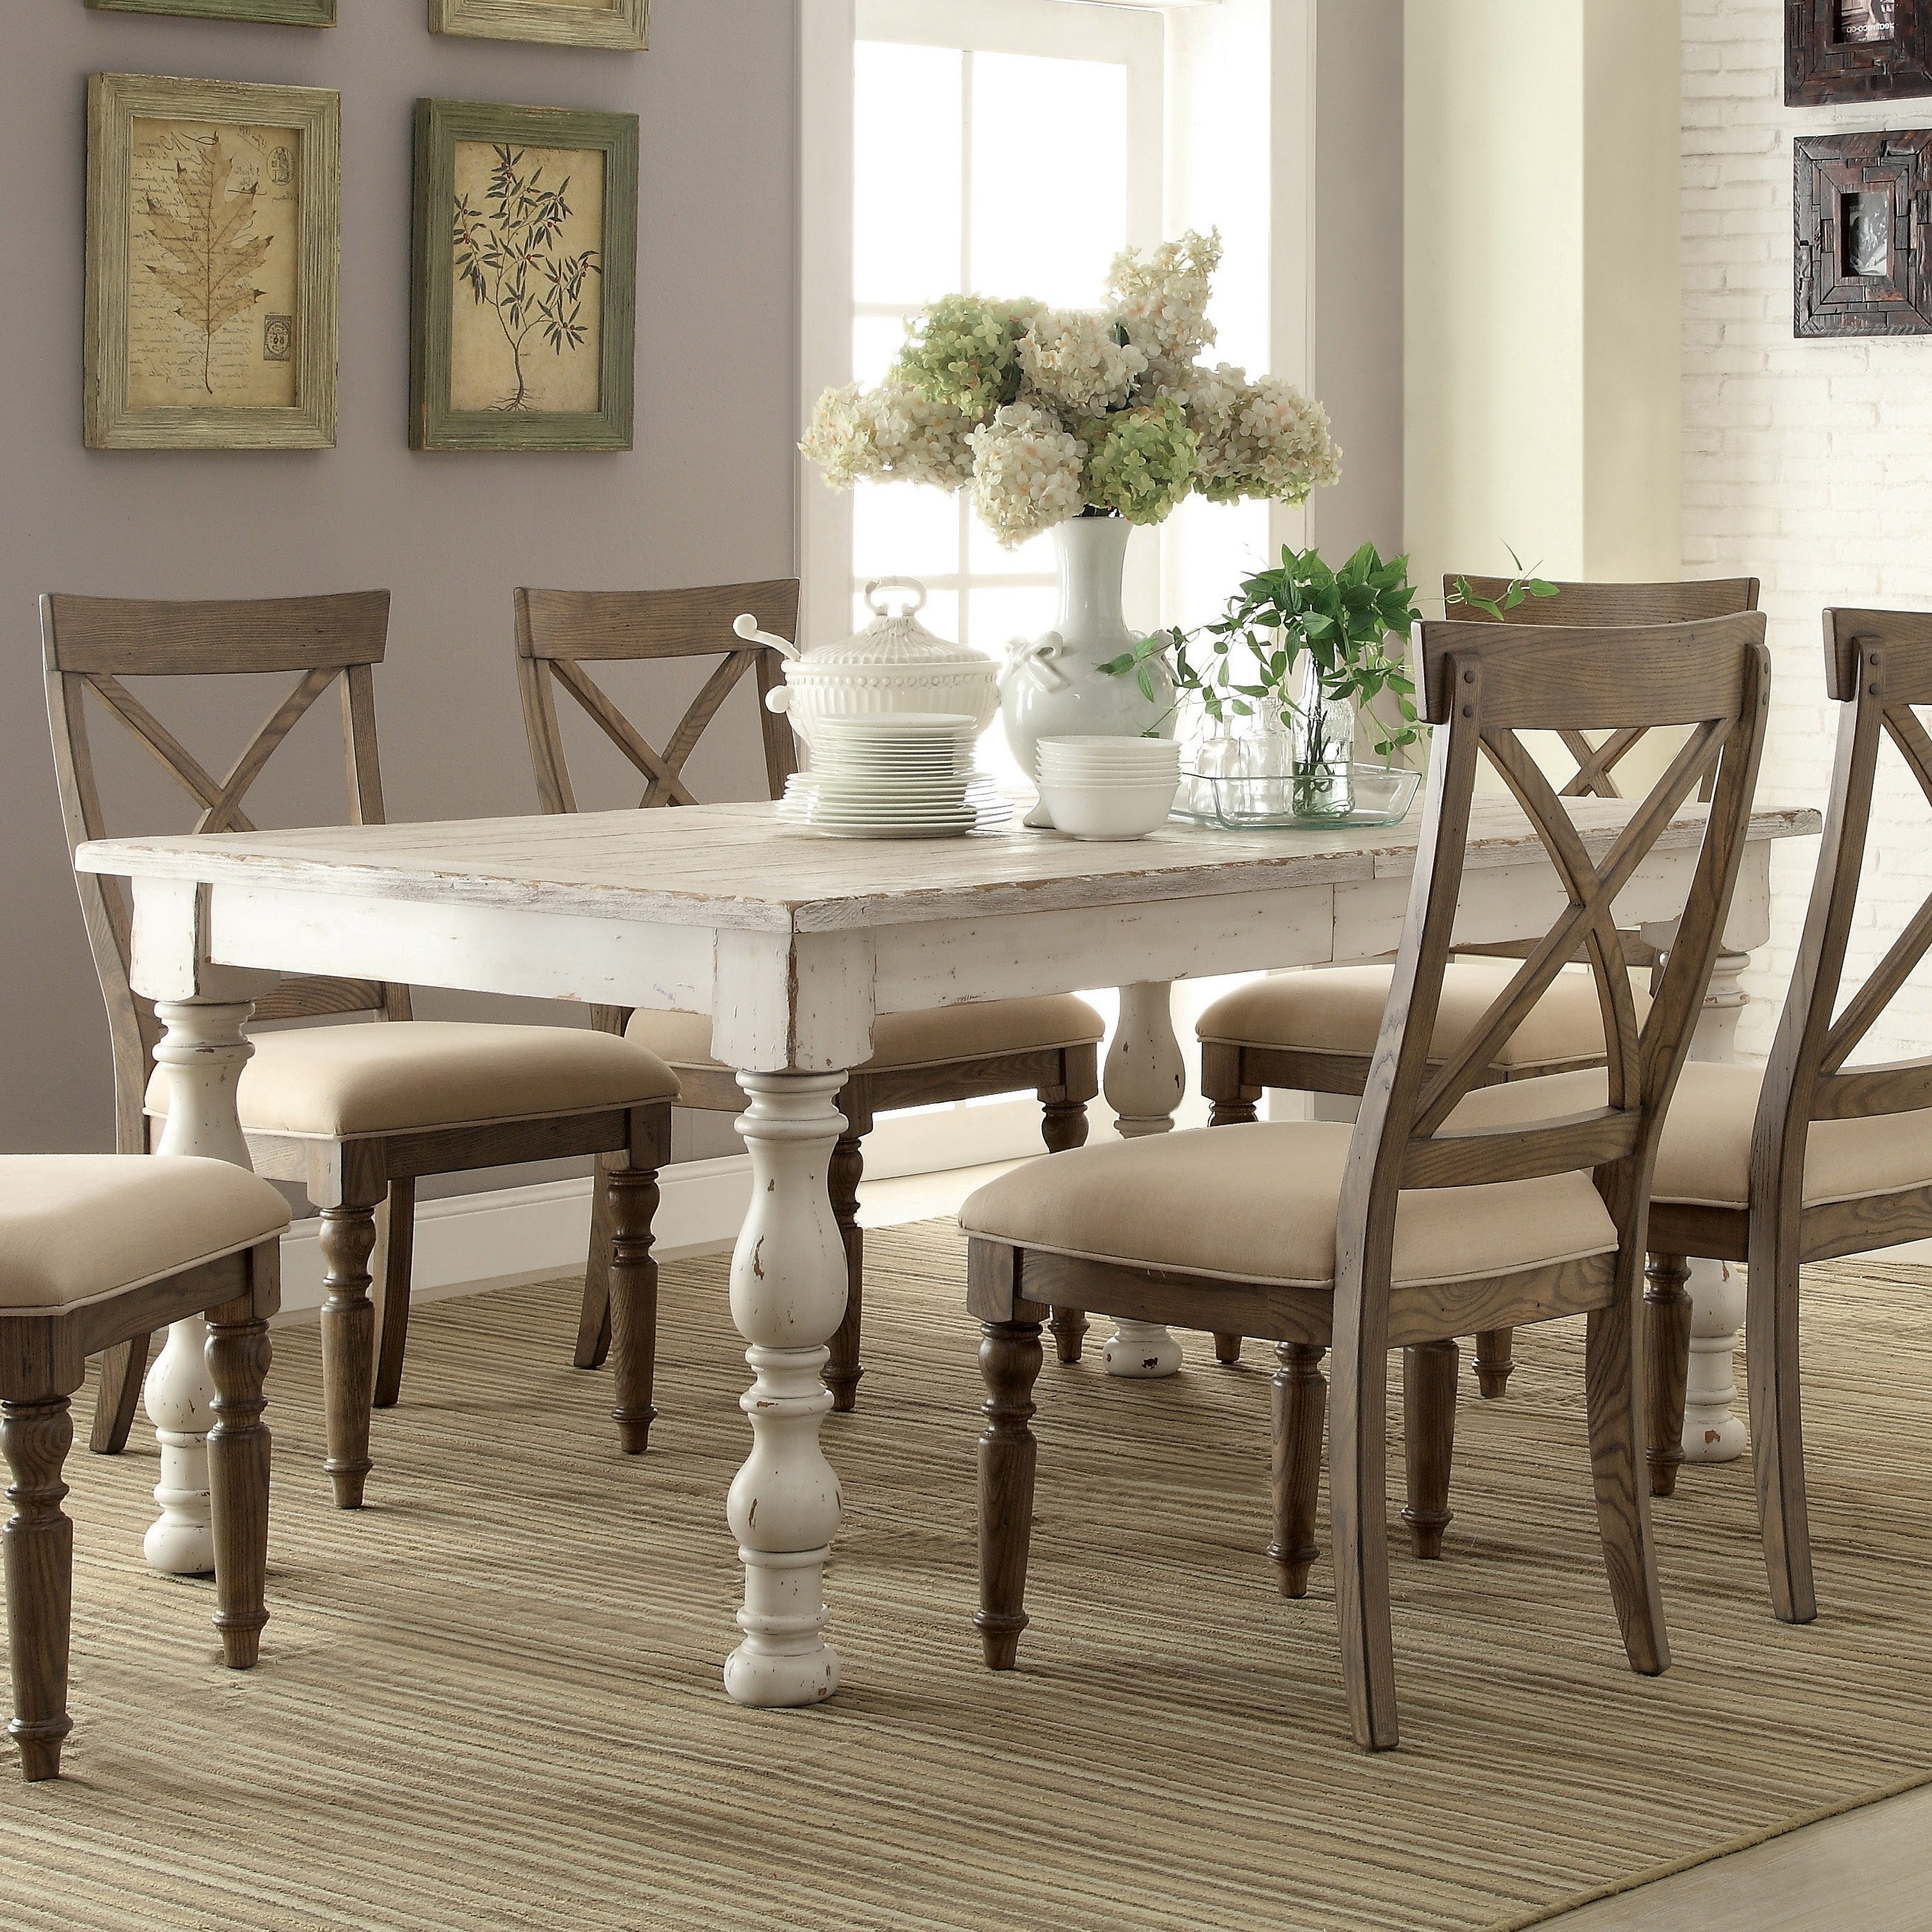 Preferred Dining Tables Sets Intended For High End Dining Tables & Kitchen Table Sets (Gallery 24 of 25)